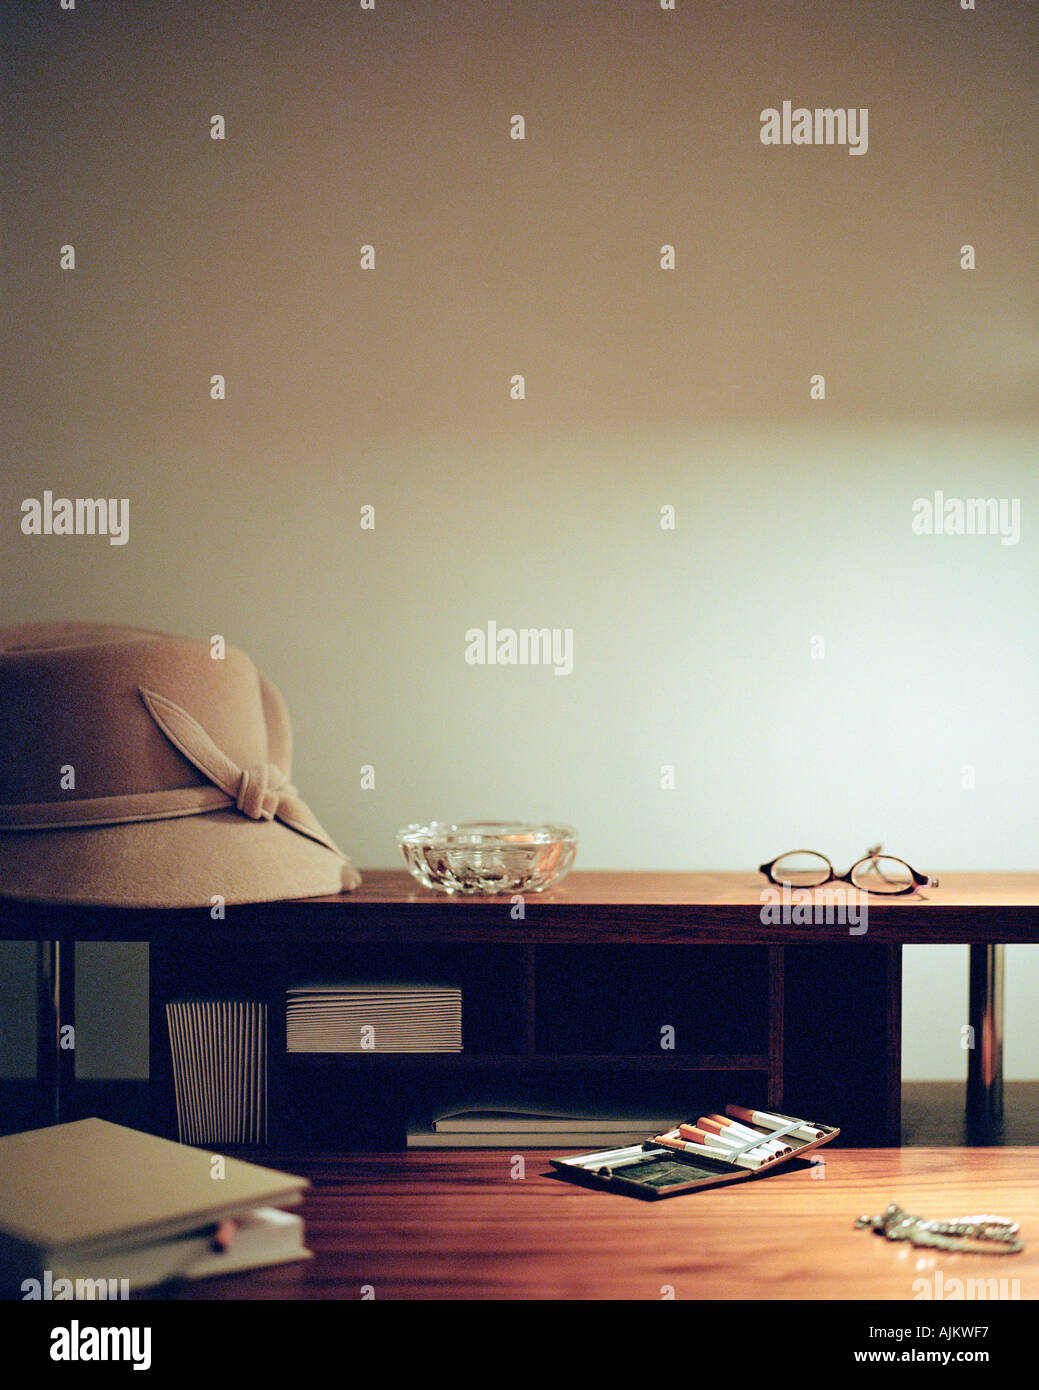 Items on a desk - Stock Image